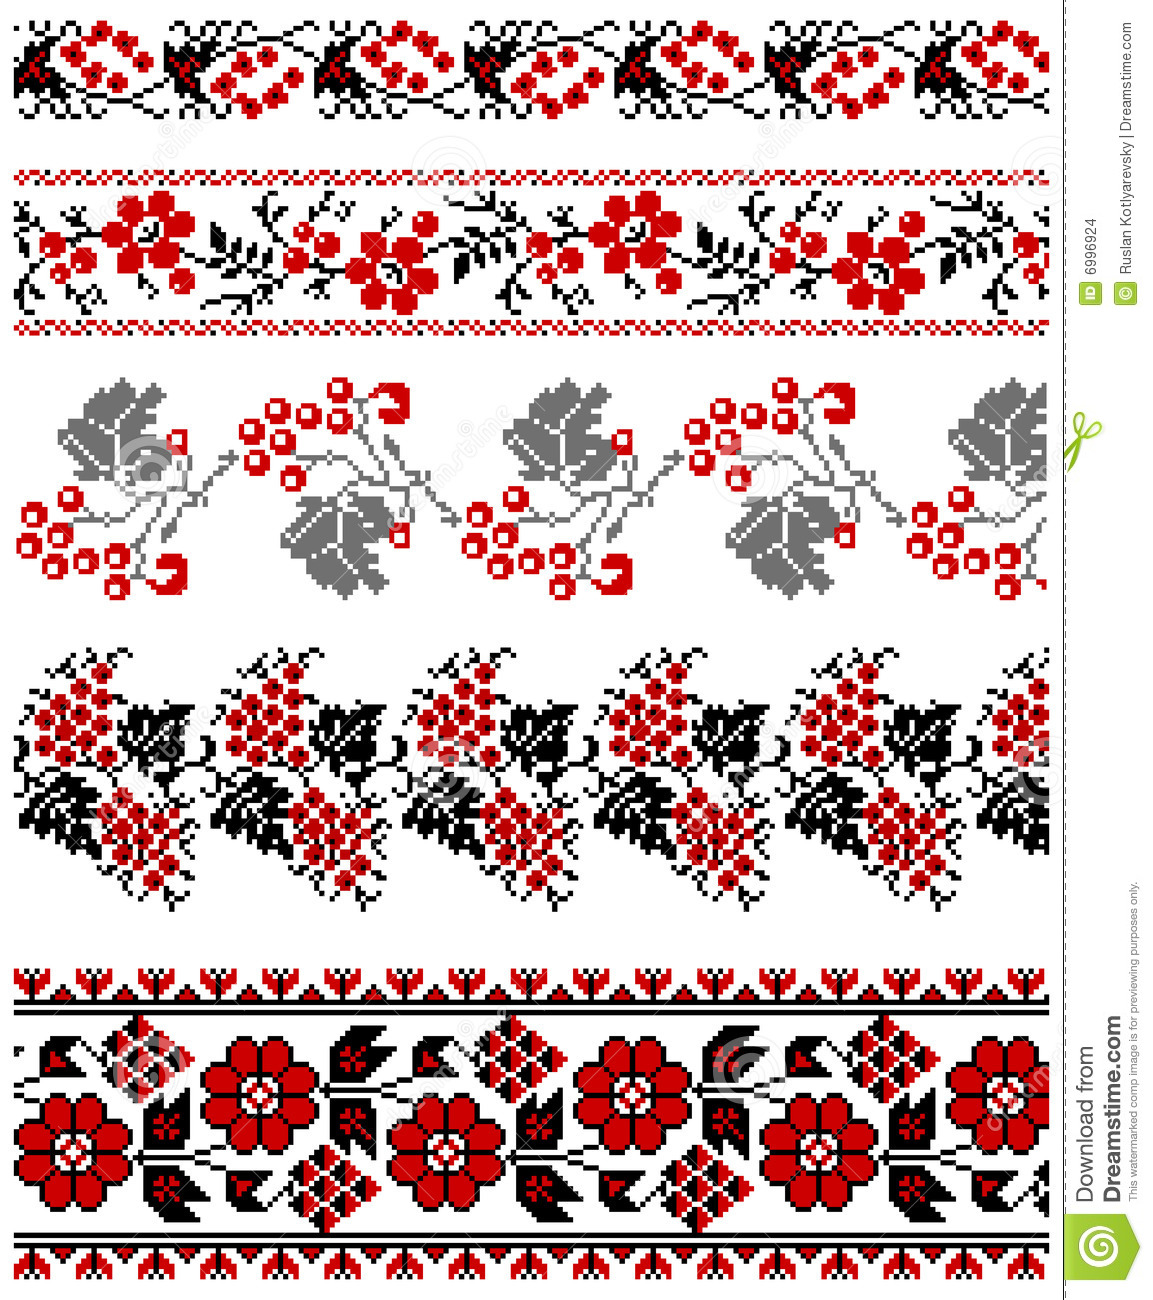 Ukrainian embroidery floral collection #06